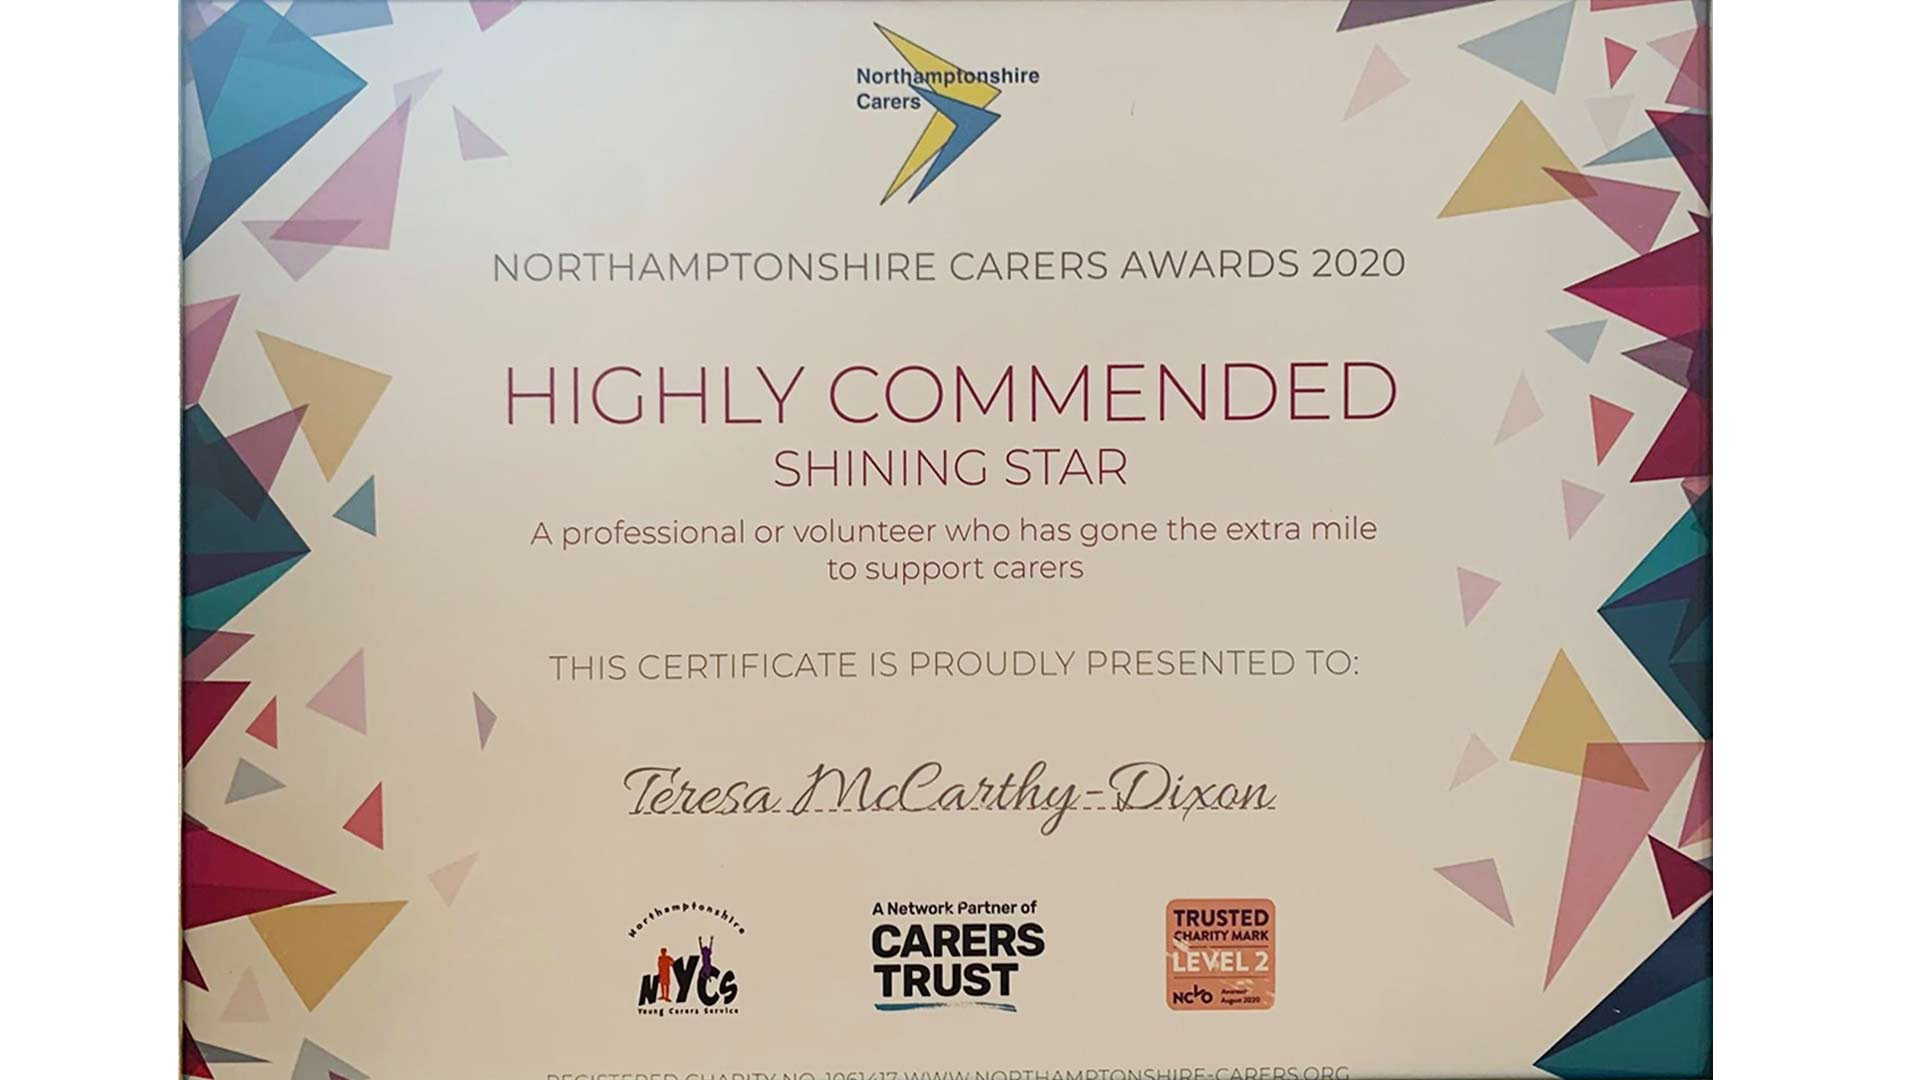 The McCarthy-Dixon Foundation won the Northamptonshire Carers Award 2020 for 'Highly Commended Shining Star A Professional or Volunteer that has gone the extra mile to support carers